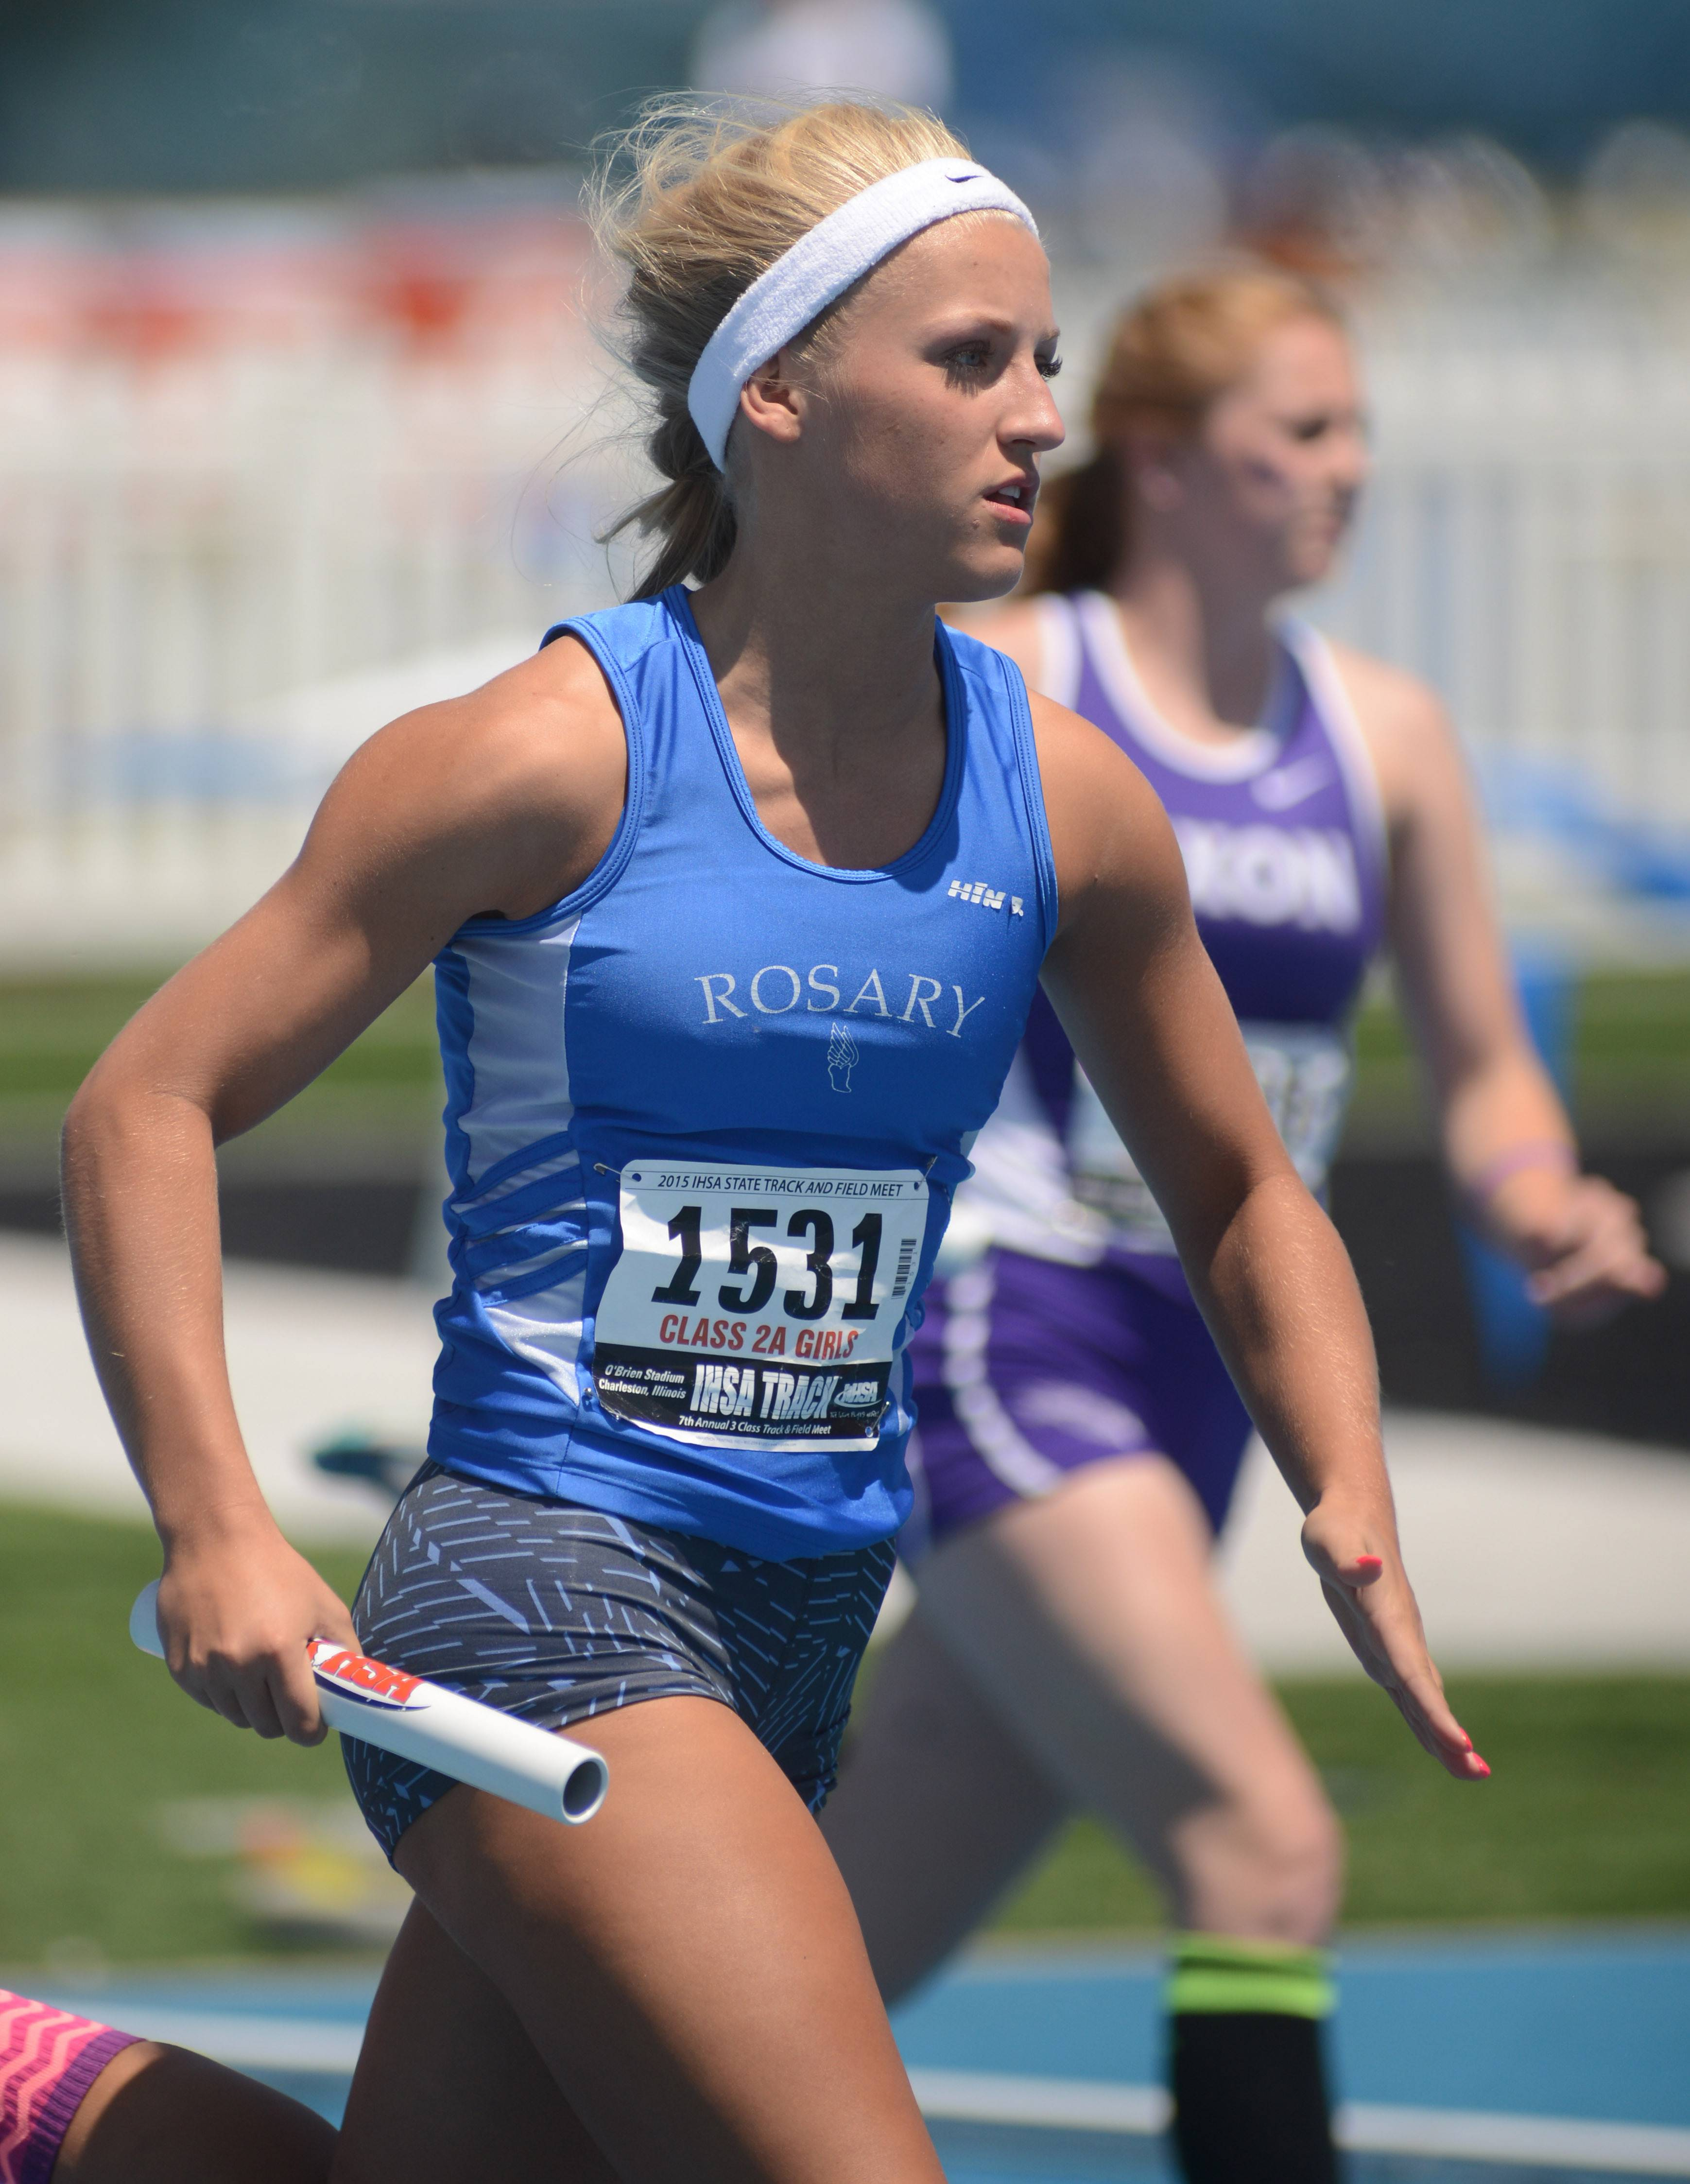 Rosary's Maddie Saloga in the second heat of the 1600-meter relay in the Class 2A semifinals at the IHSA state track finals at O'Brien Stadium in Charleston, IL Friday. Rosary's Maddie Saloga